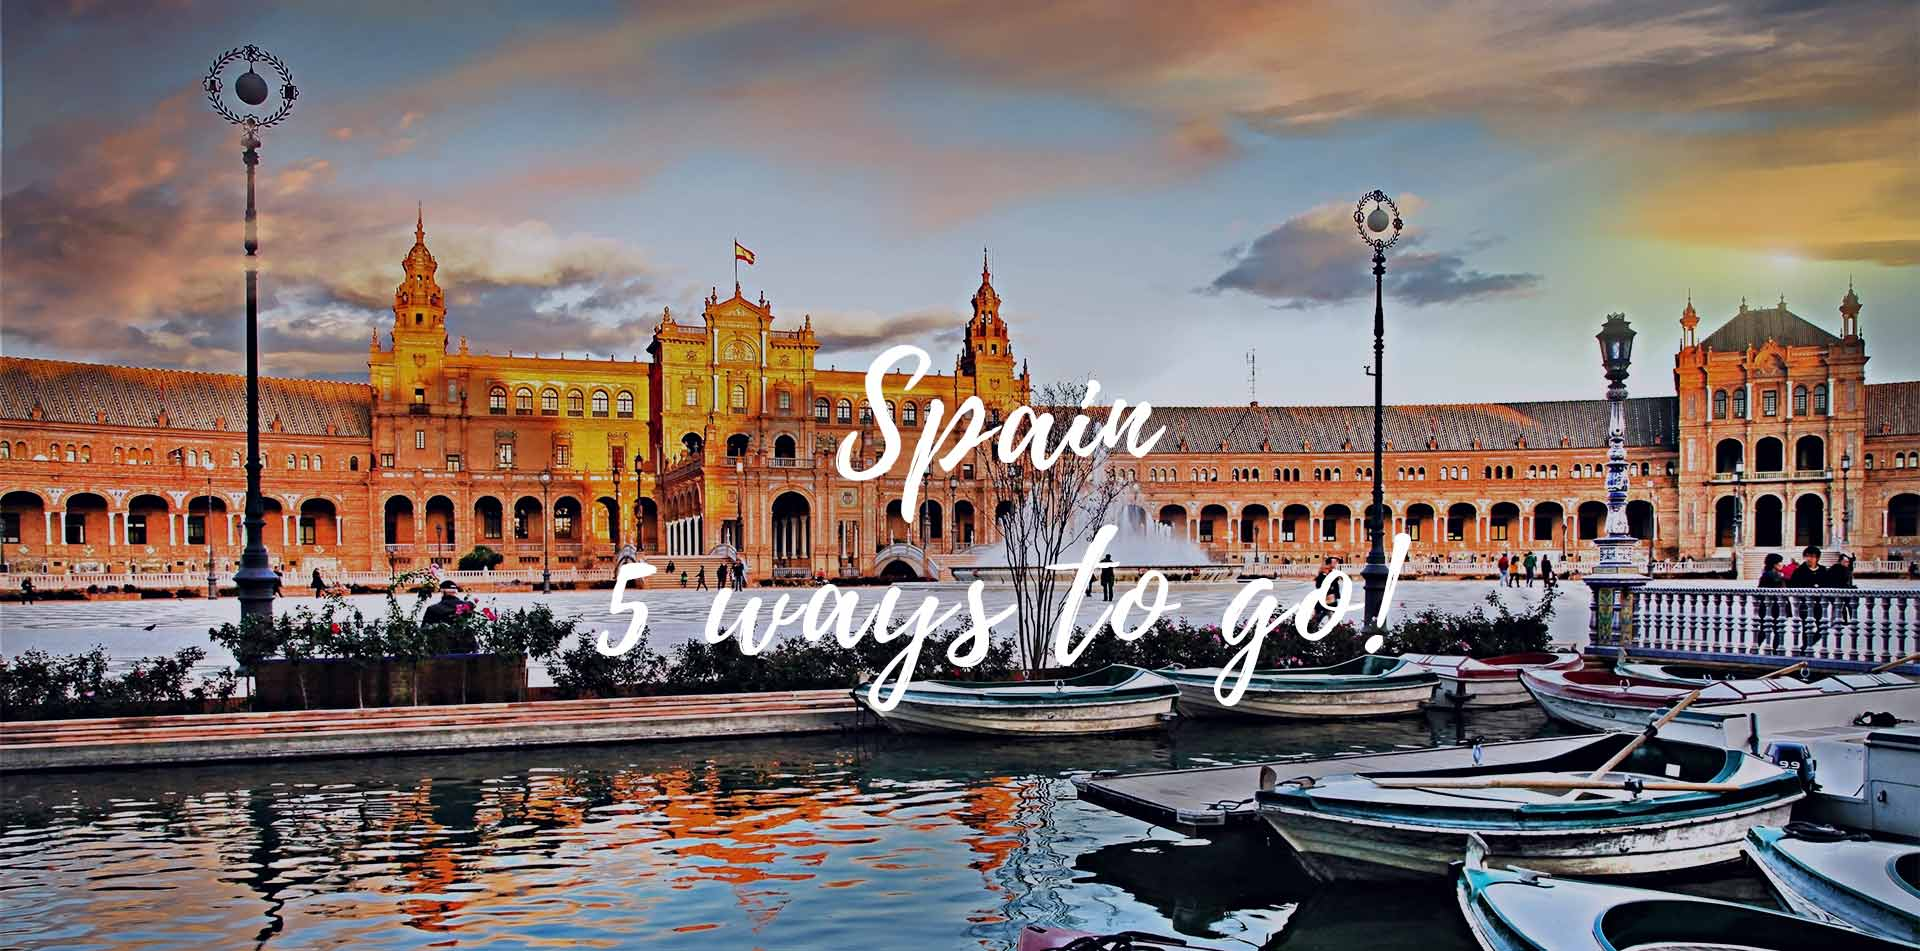 Europe Spain beautiful Mediterranean coast lively culture food countryside seville plaza- luxury vacation destinations